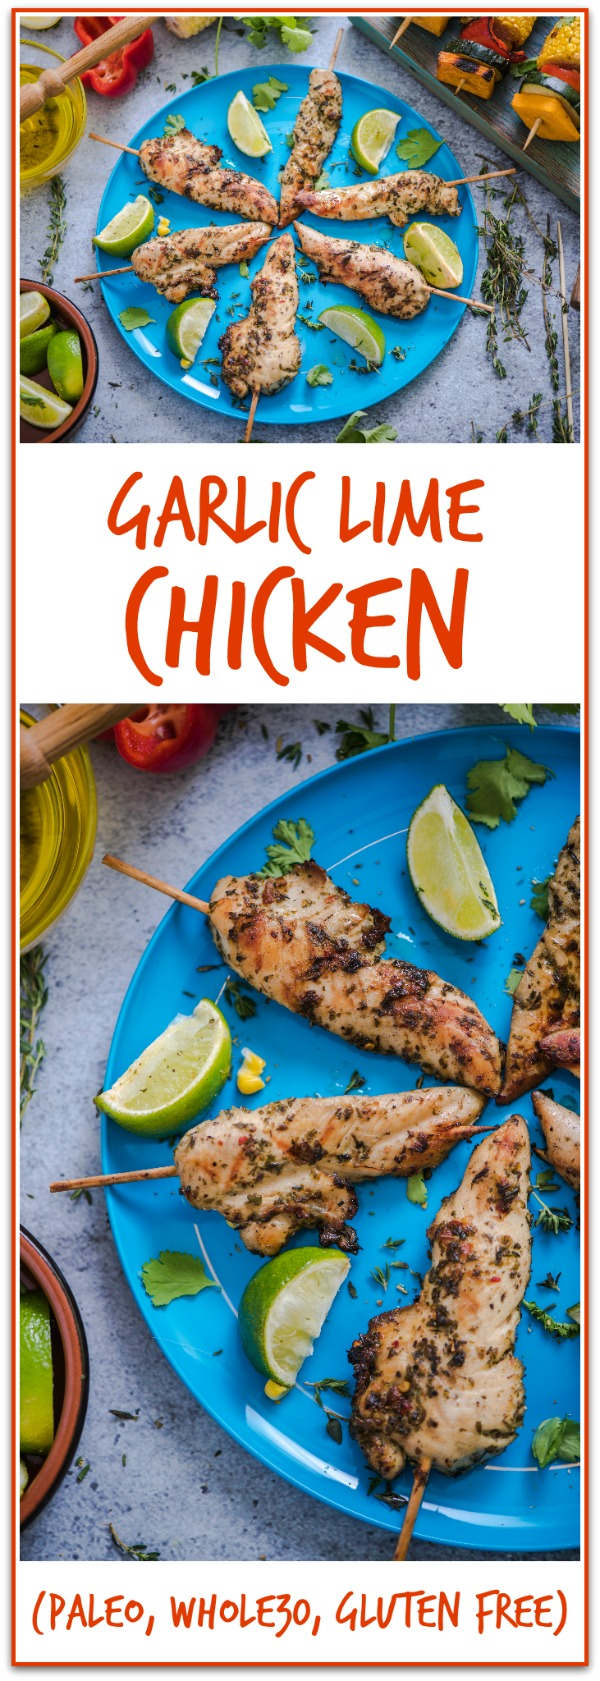 This garlic lime chicken recipe is SO good!!! A family favorite. I make it once a week! (Paleo, Whole30, Gluten Free) Also a really good freezer meal!